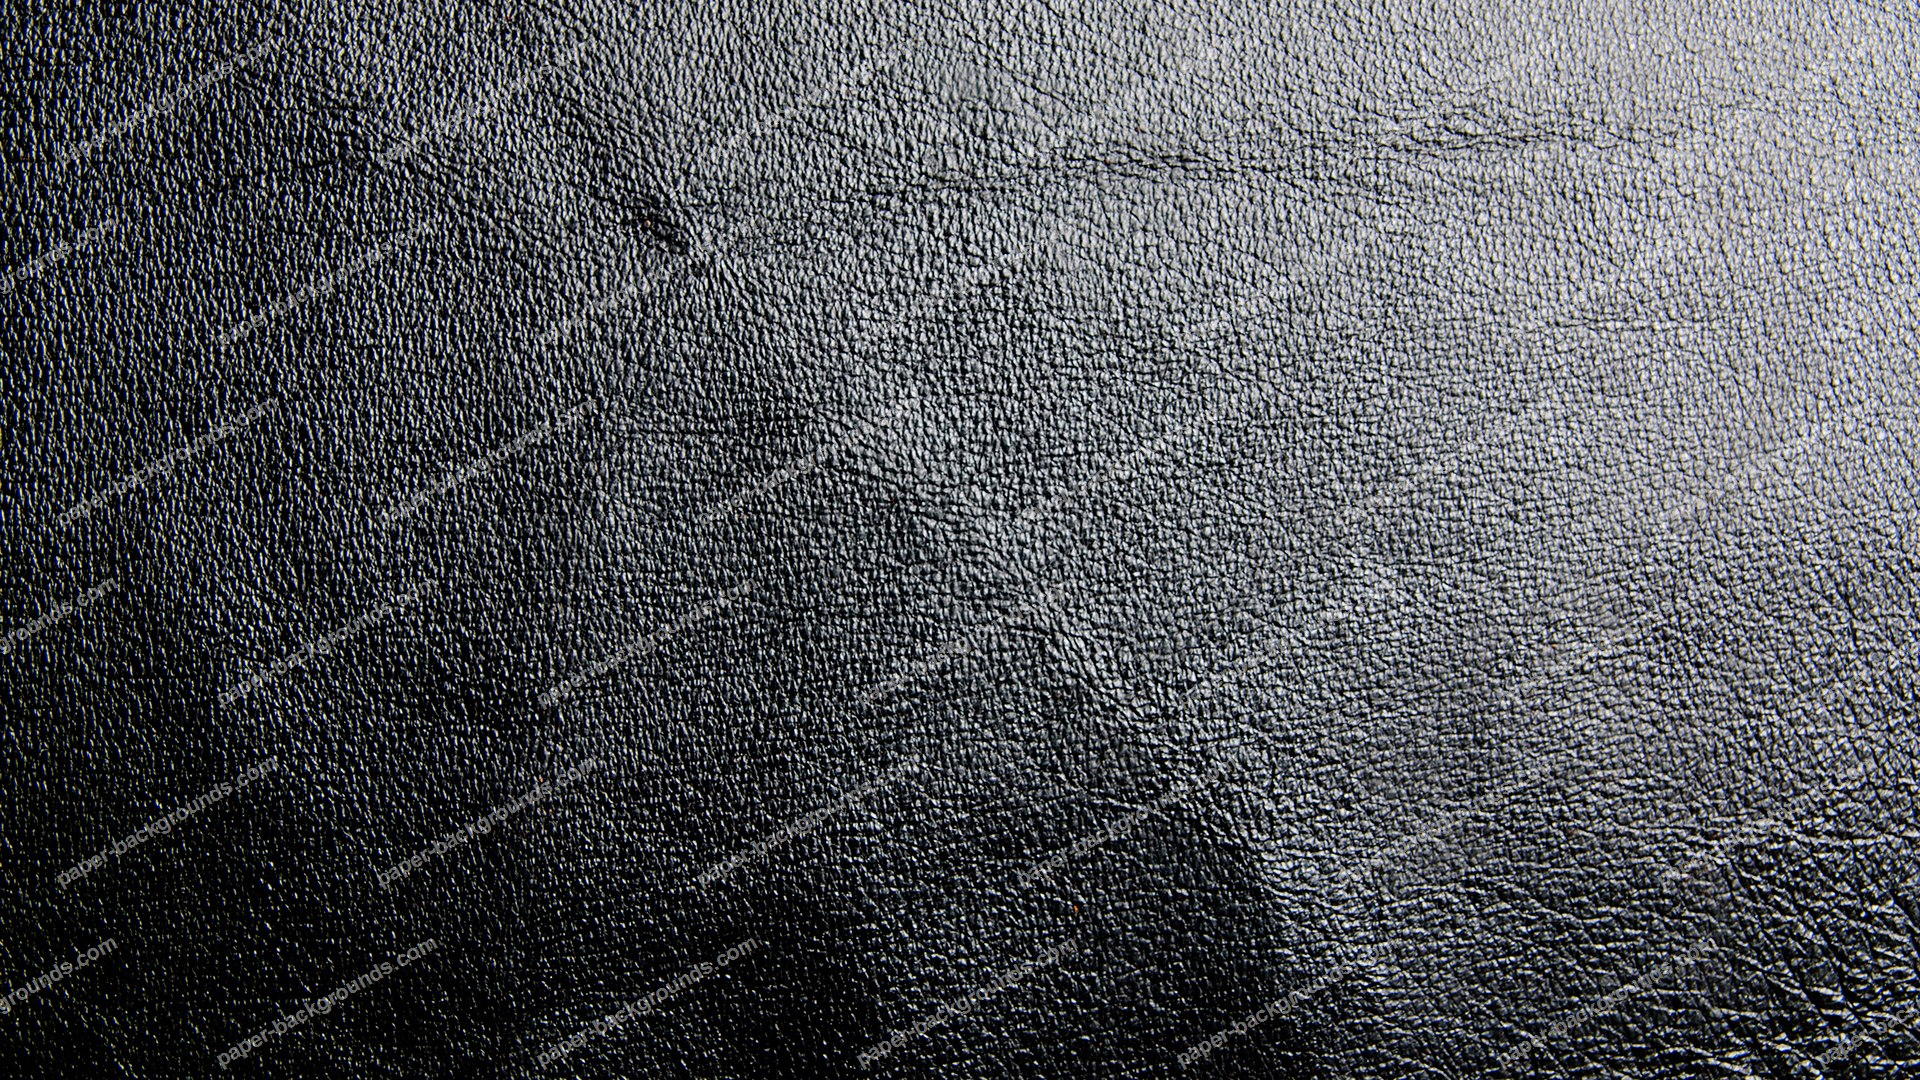 Black Shiny Leather Background Paper Backgrounds 1920x1080